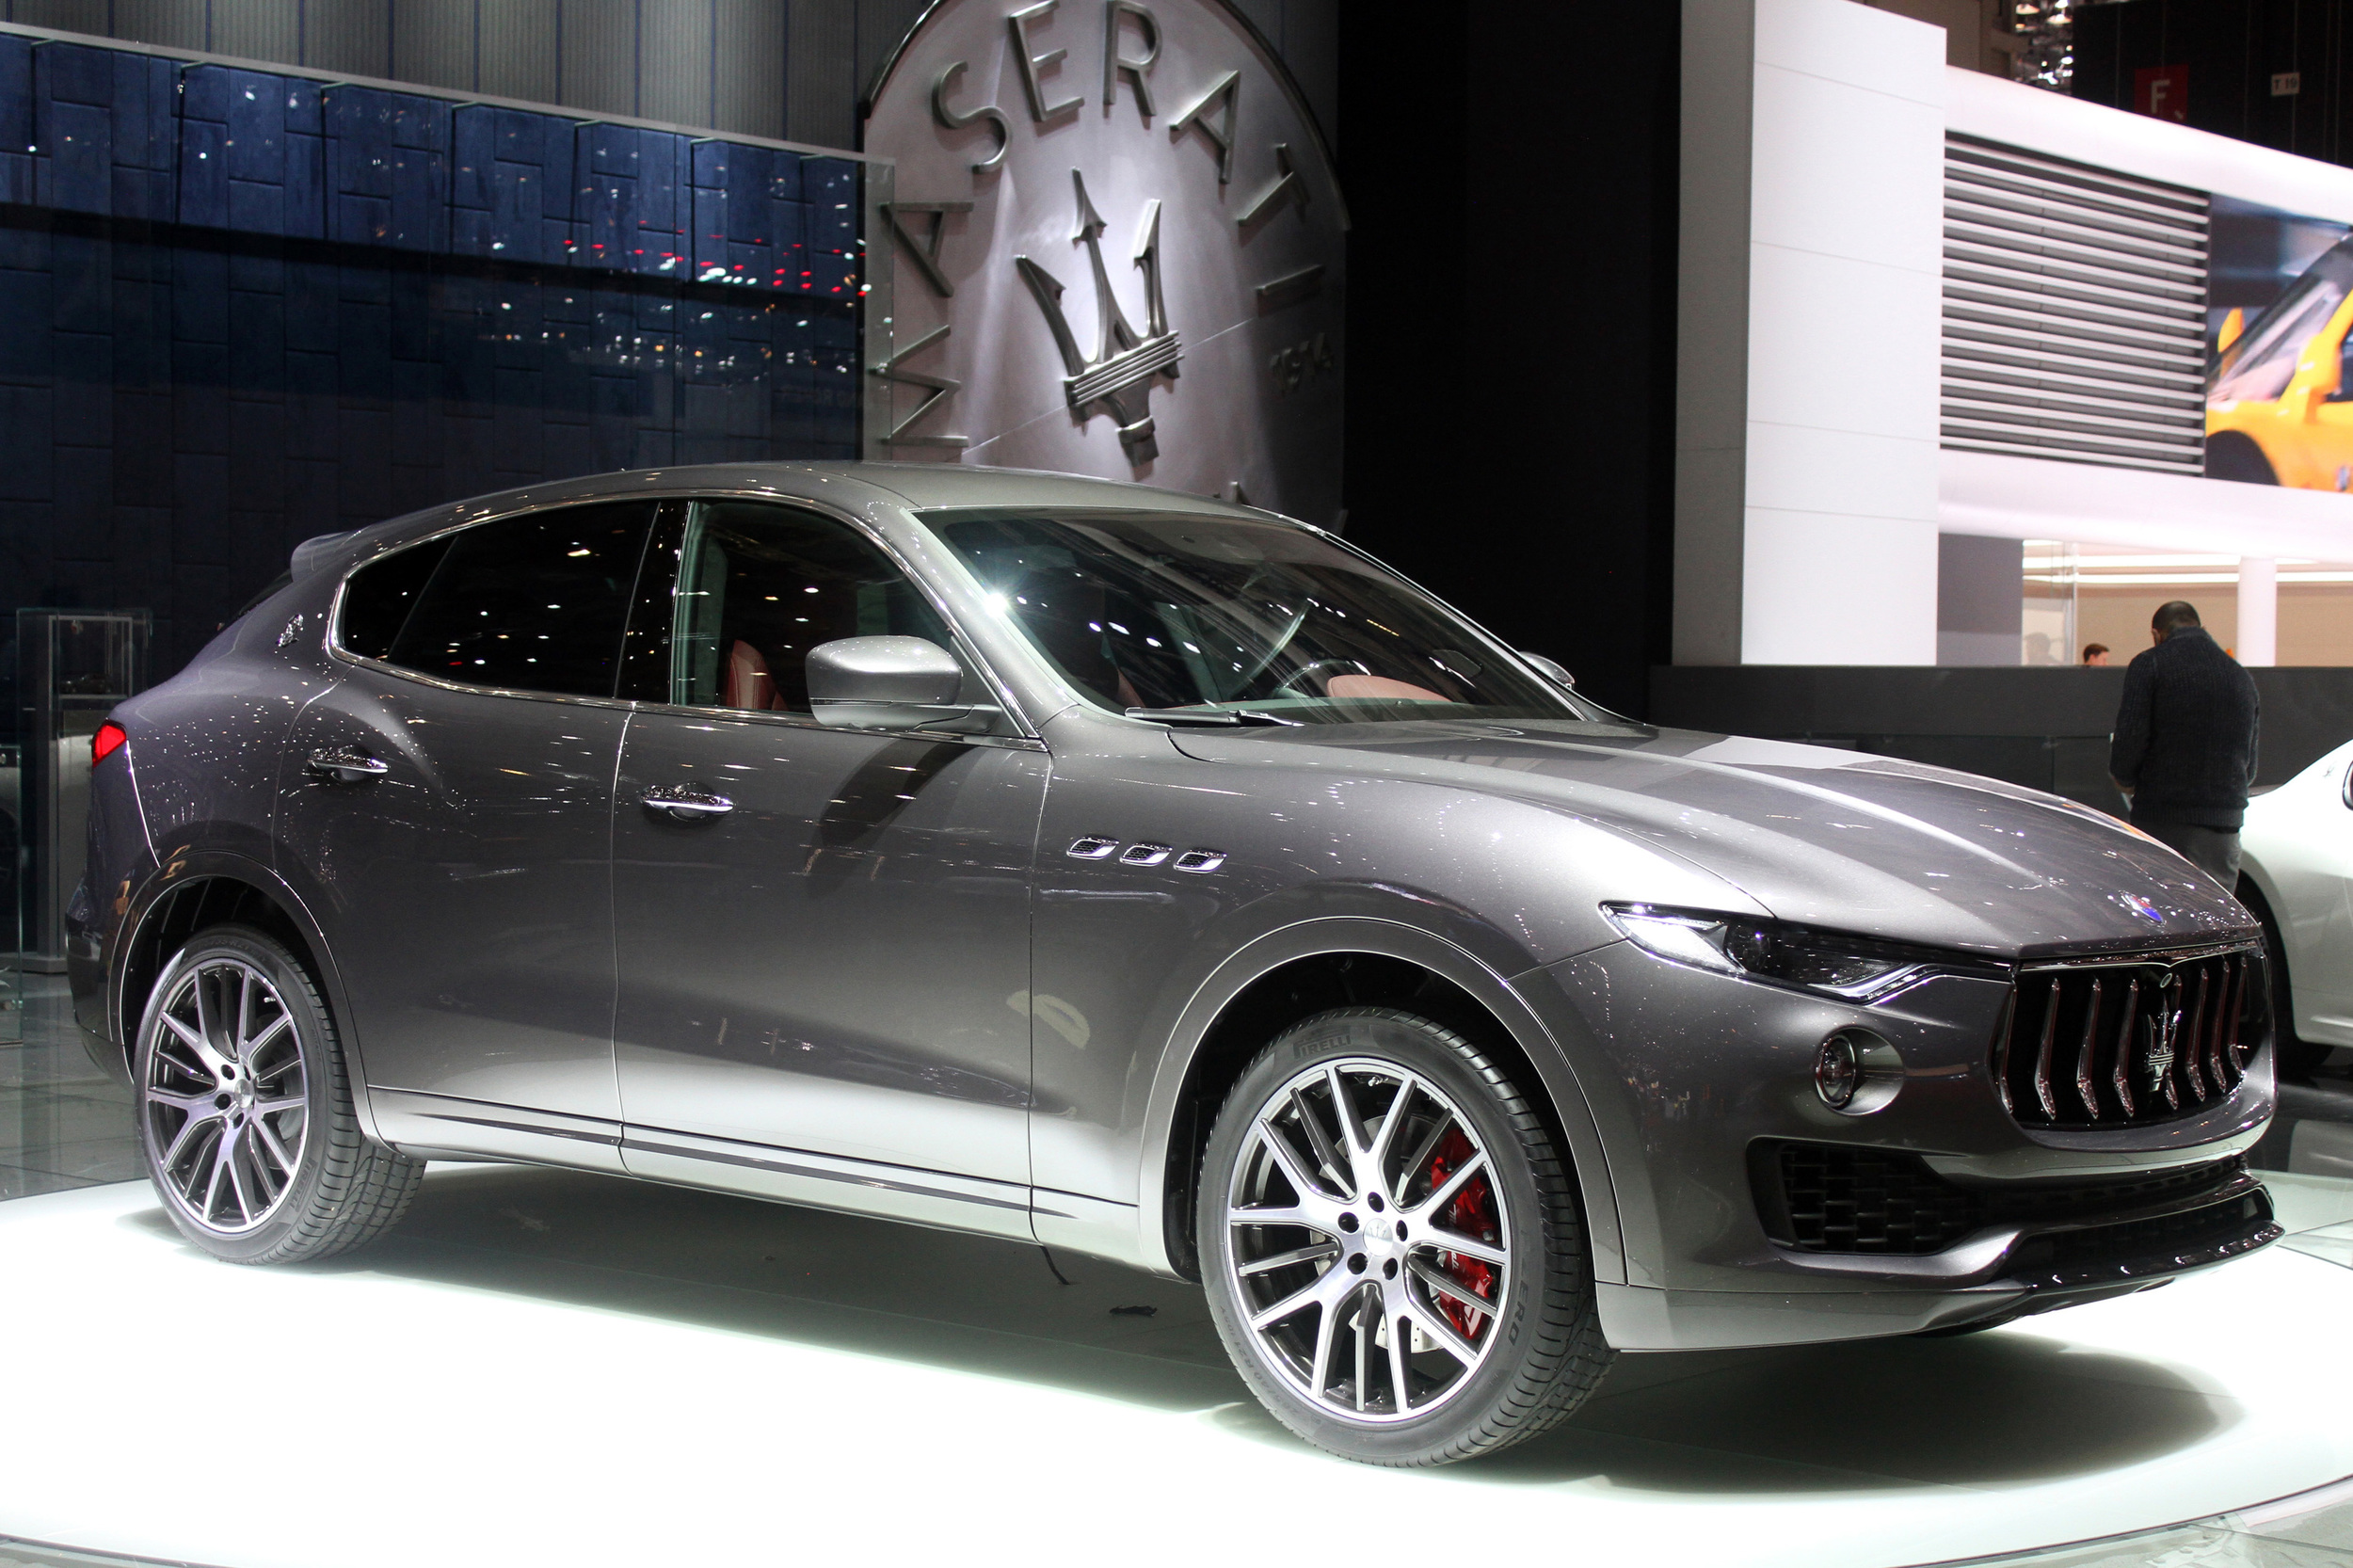 maserati levante 2016 dark cars wallpapers. Black Bedroom Furniture Sets. Home Design Ideas